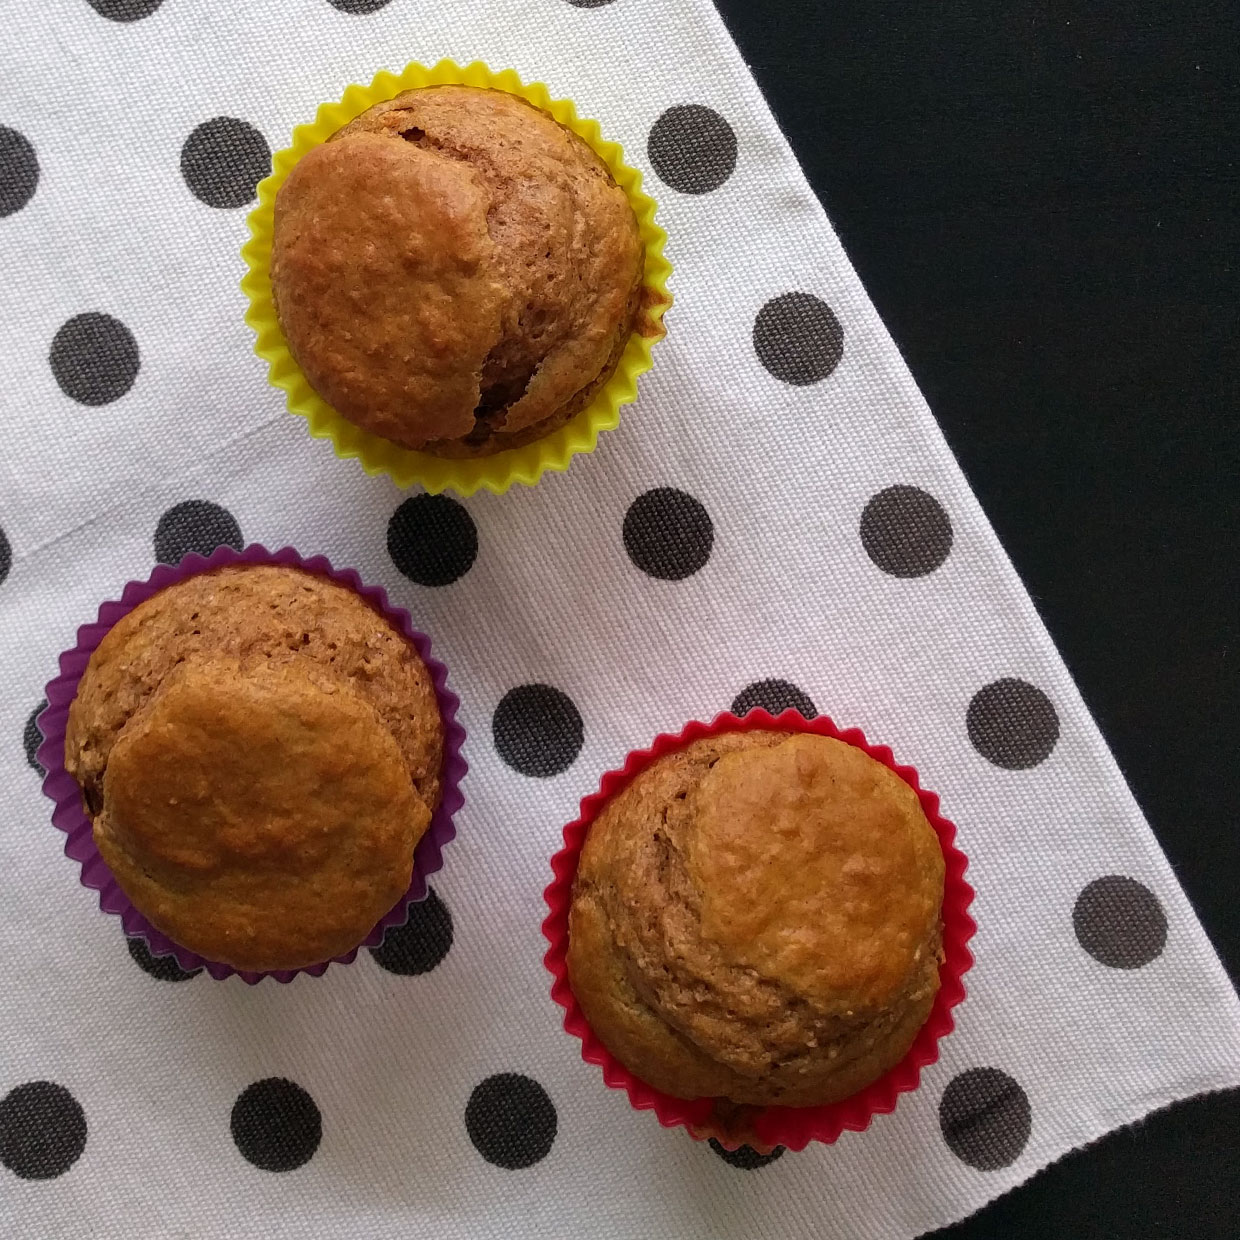 recette-muffins-patate-douce-cannelle-sirop-erable